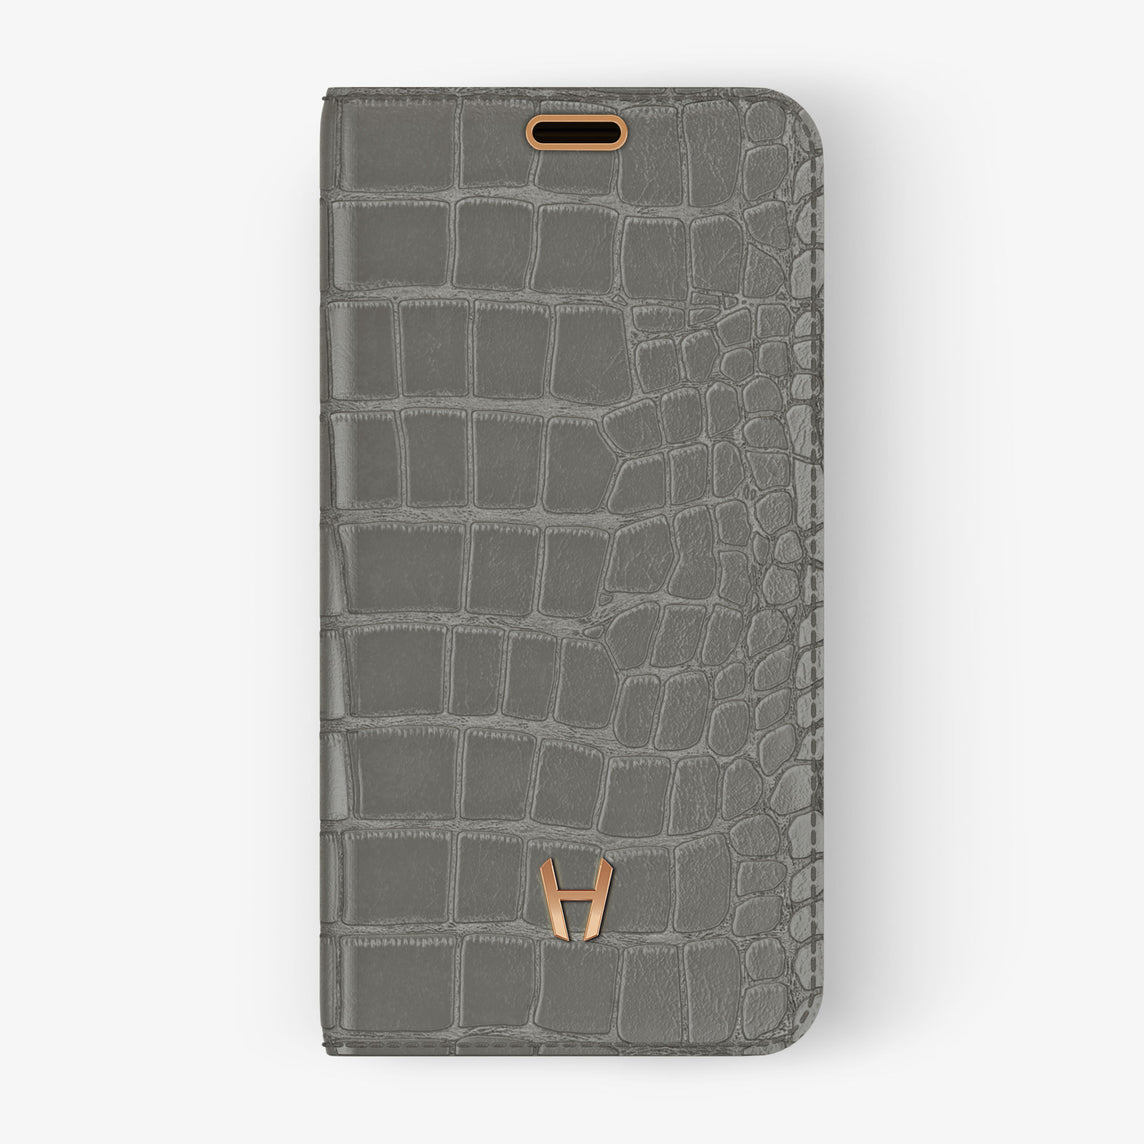 Alligator Folio Case iPhone 11 Pro | Pearl Grey - Rose Gold